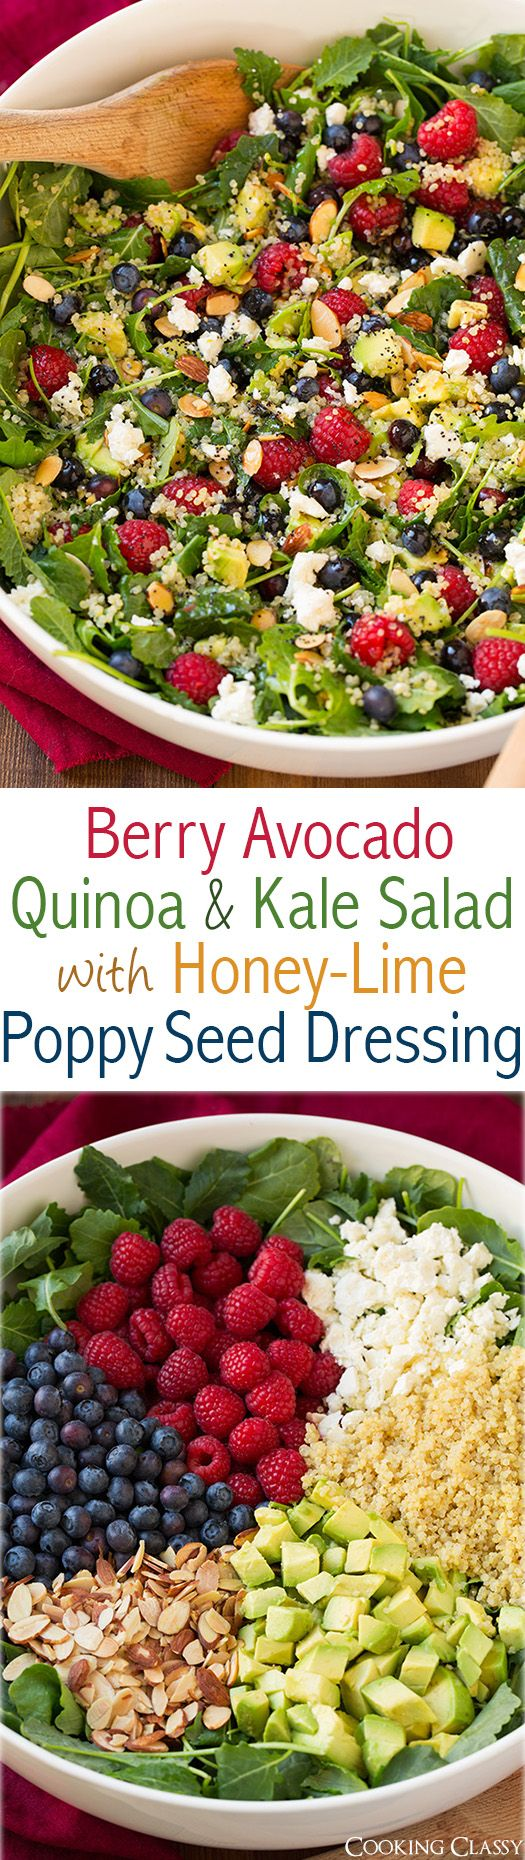 Berry Avocado Quinoa and Kale Salad with Honey-Lime Poppy Seed Dressing – a healthy superfood salad that i